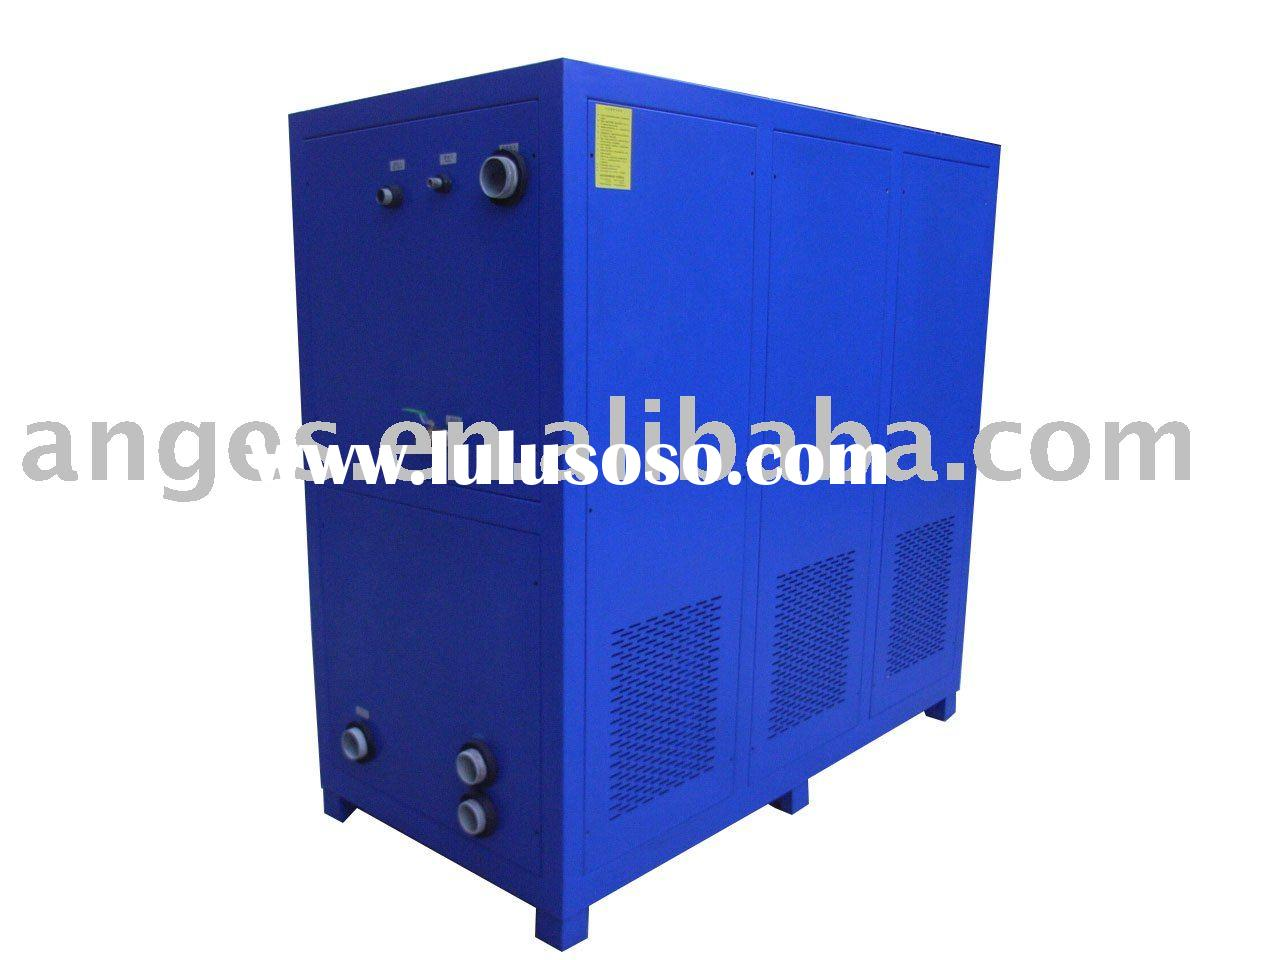 water cooled industrial chiller water cooled industrial chiller  #1E3CAD